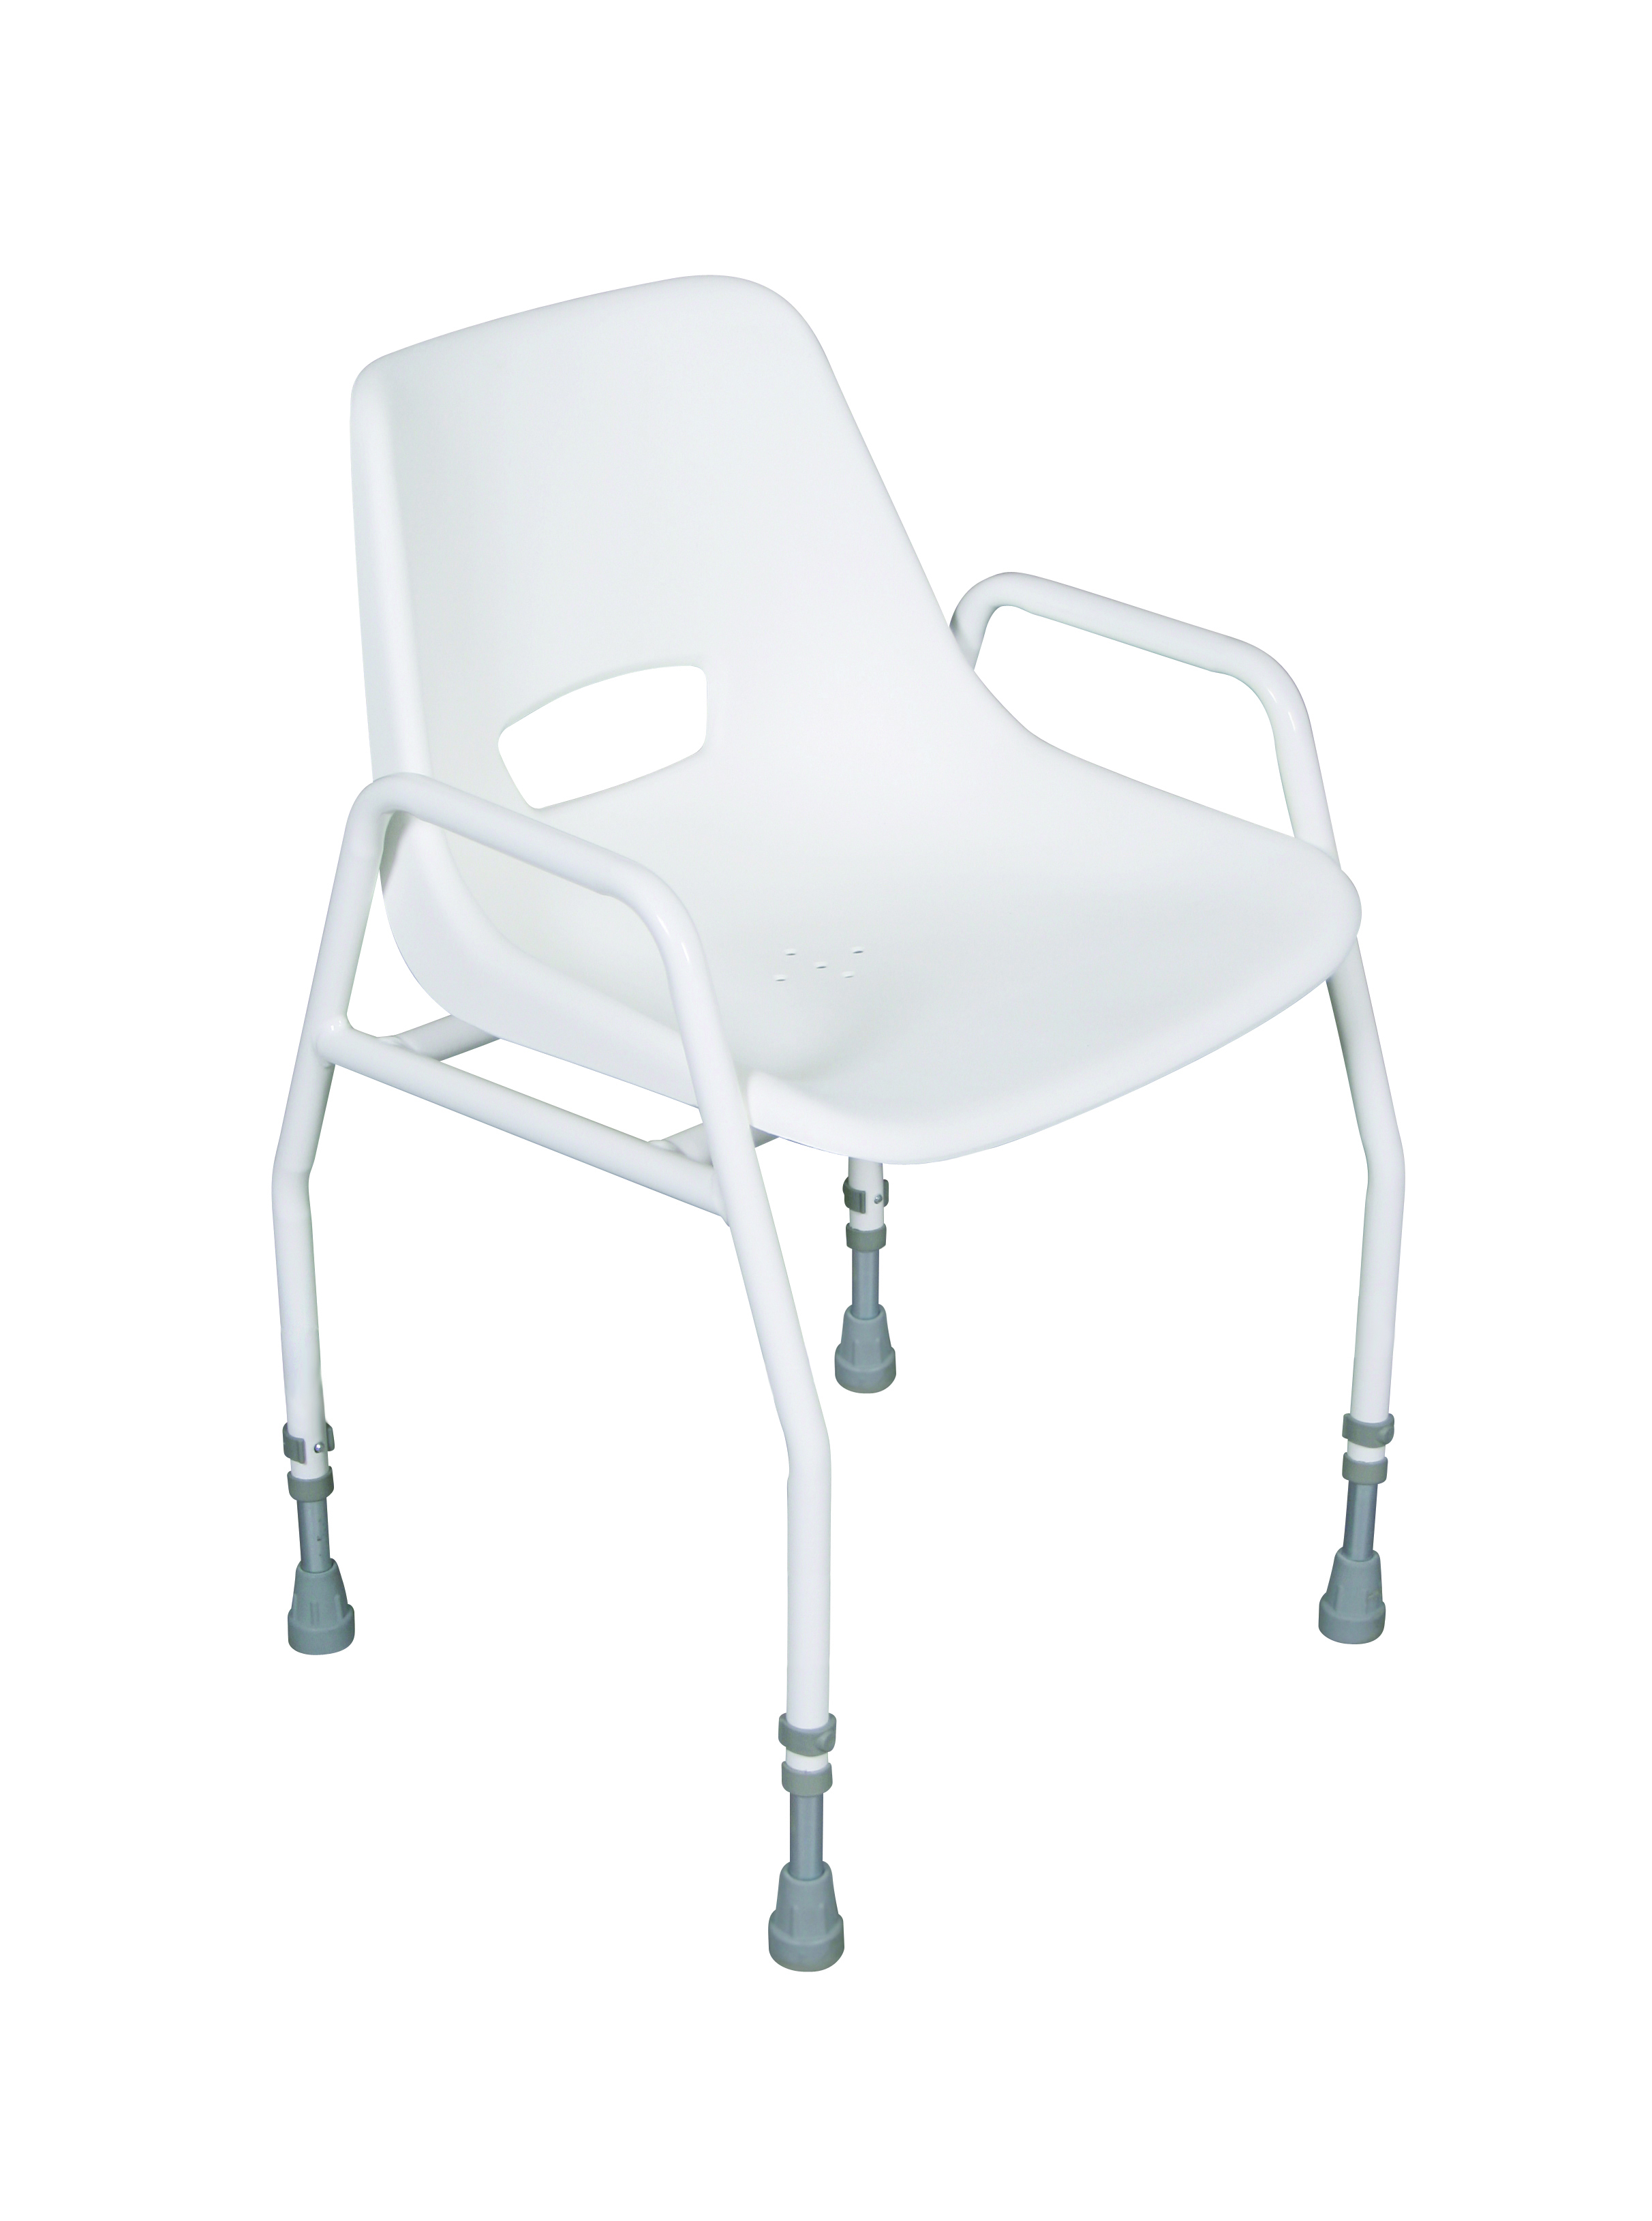 Foxton Shower Chair - Seat W-18inch D-15inch Adjustable Height